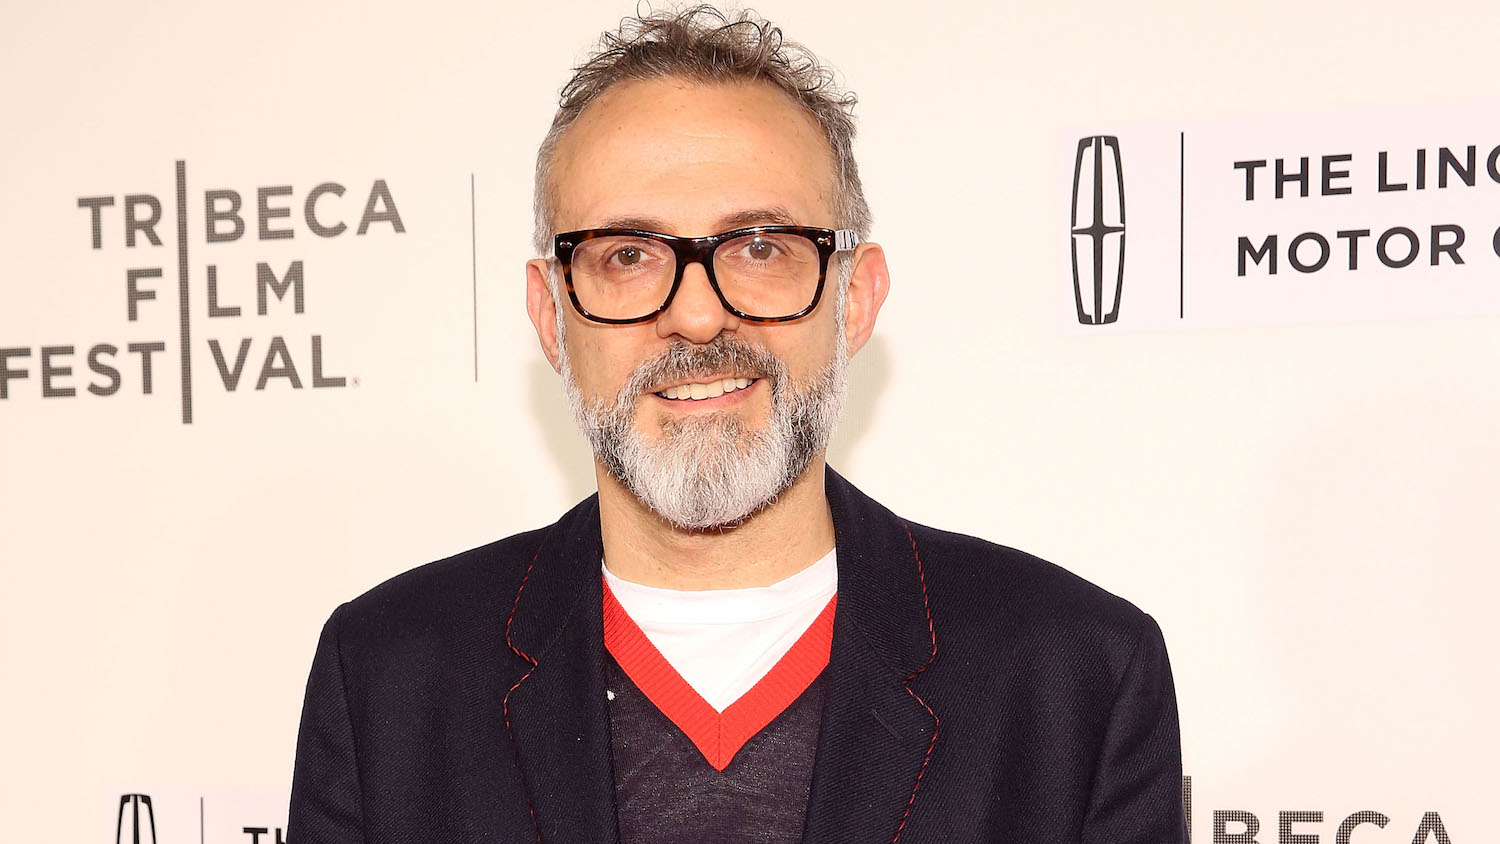 Massimo Bottura Starts a Soup Kitchen in New Documentary